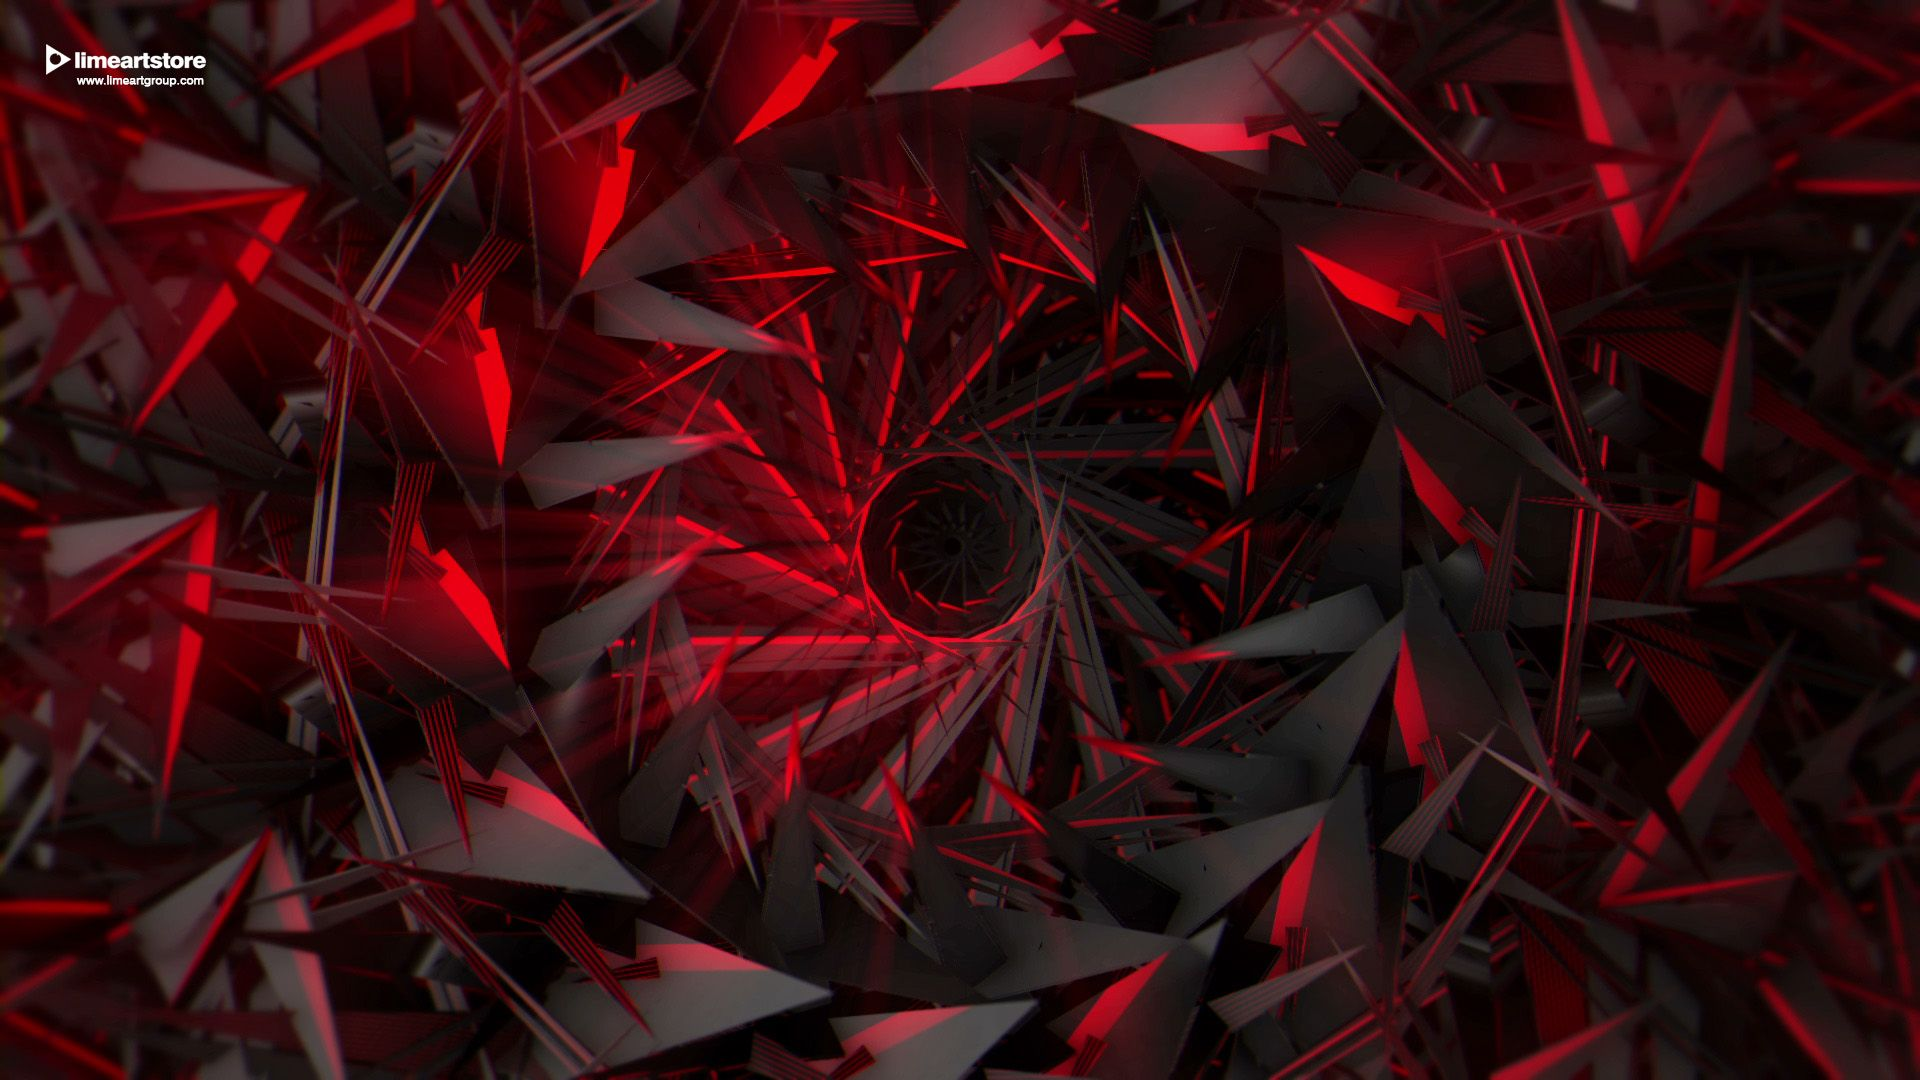 Background Black And Red Abstract, Fractals